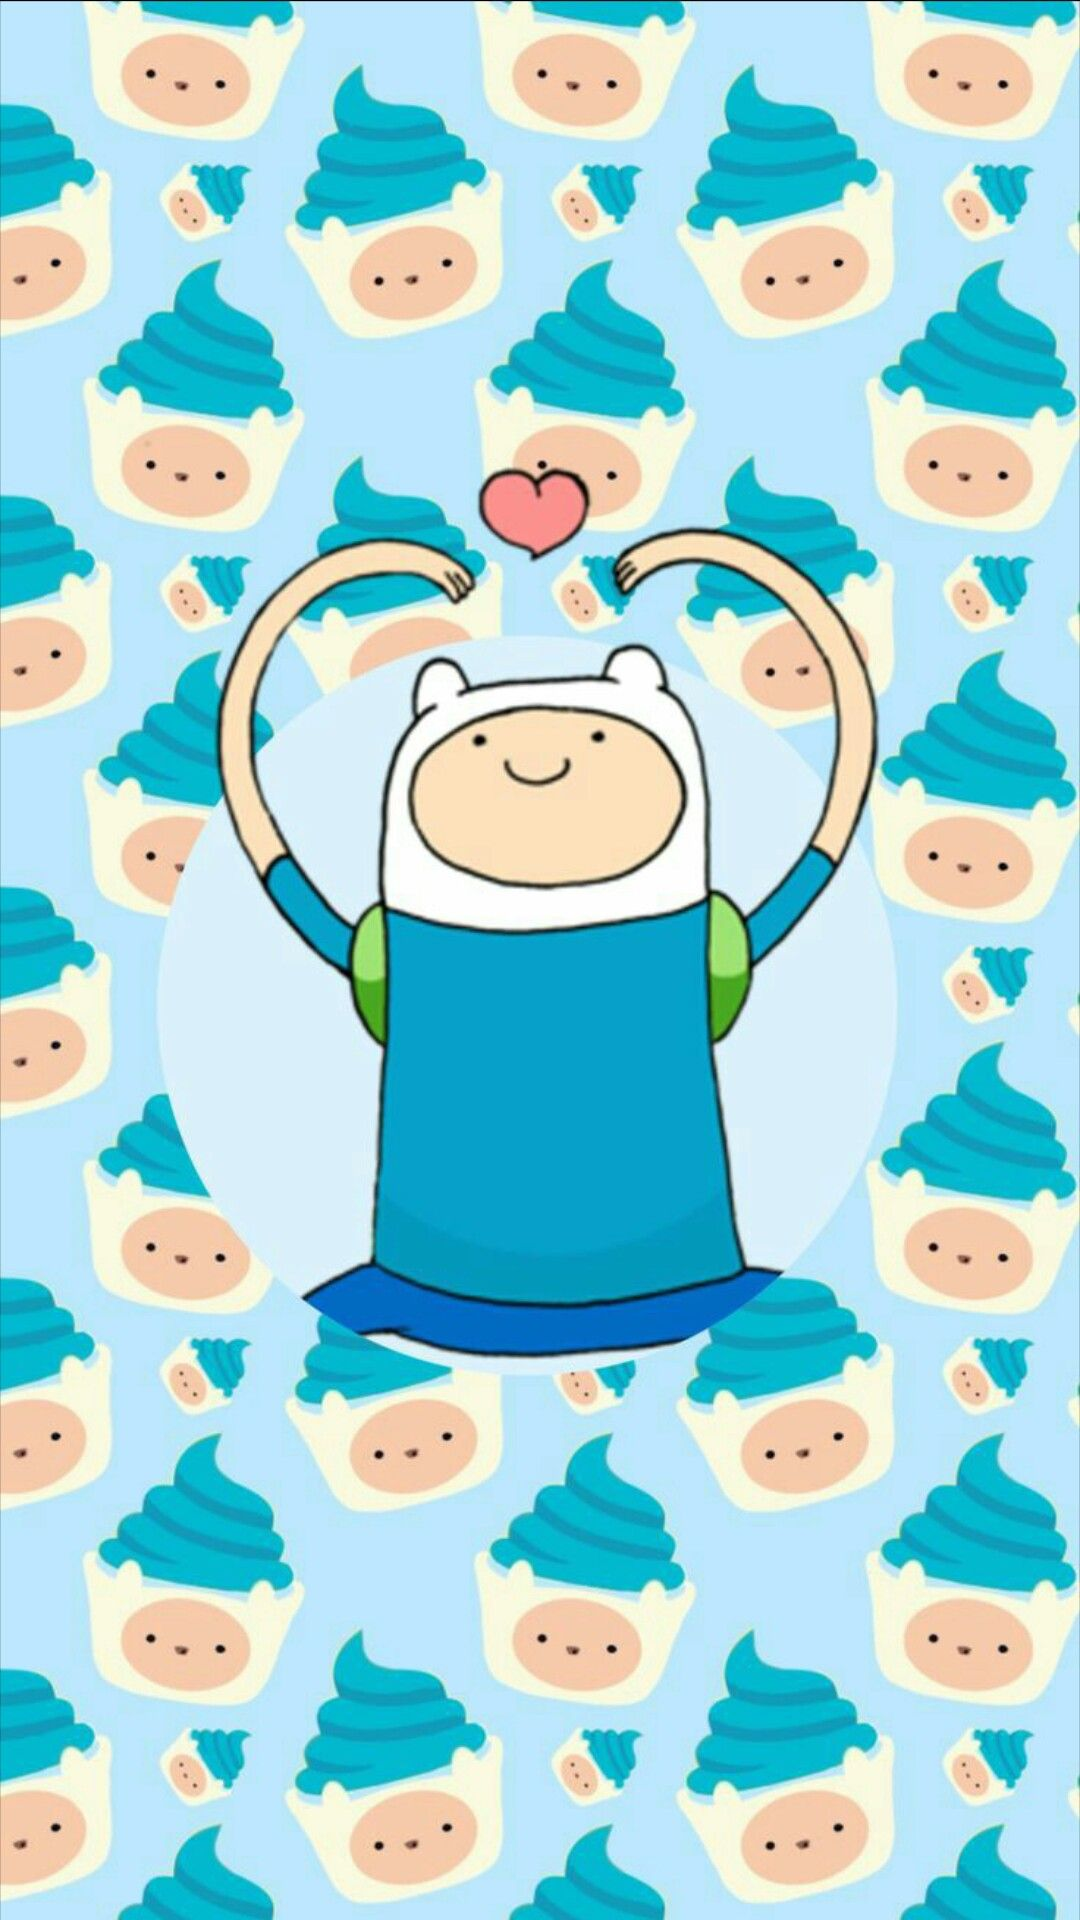 Finn Adventure Time wallpapers Pinterest Adventure